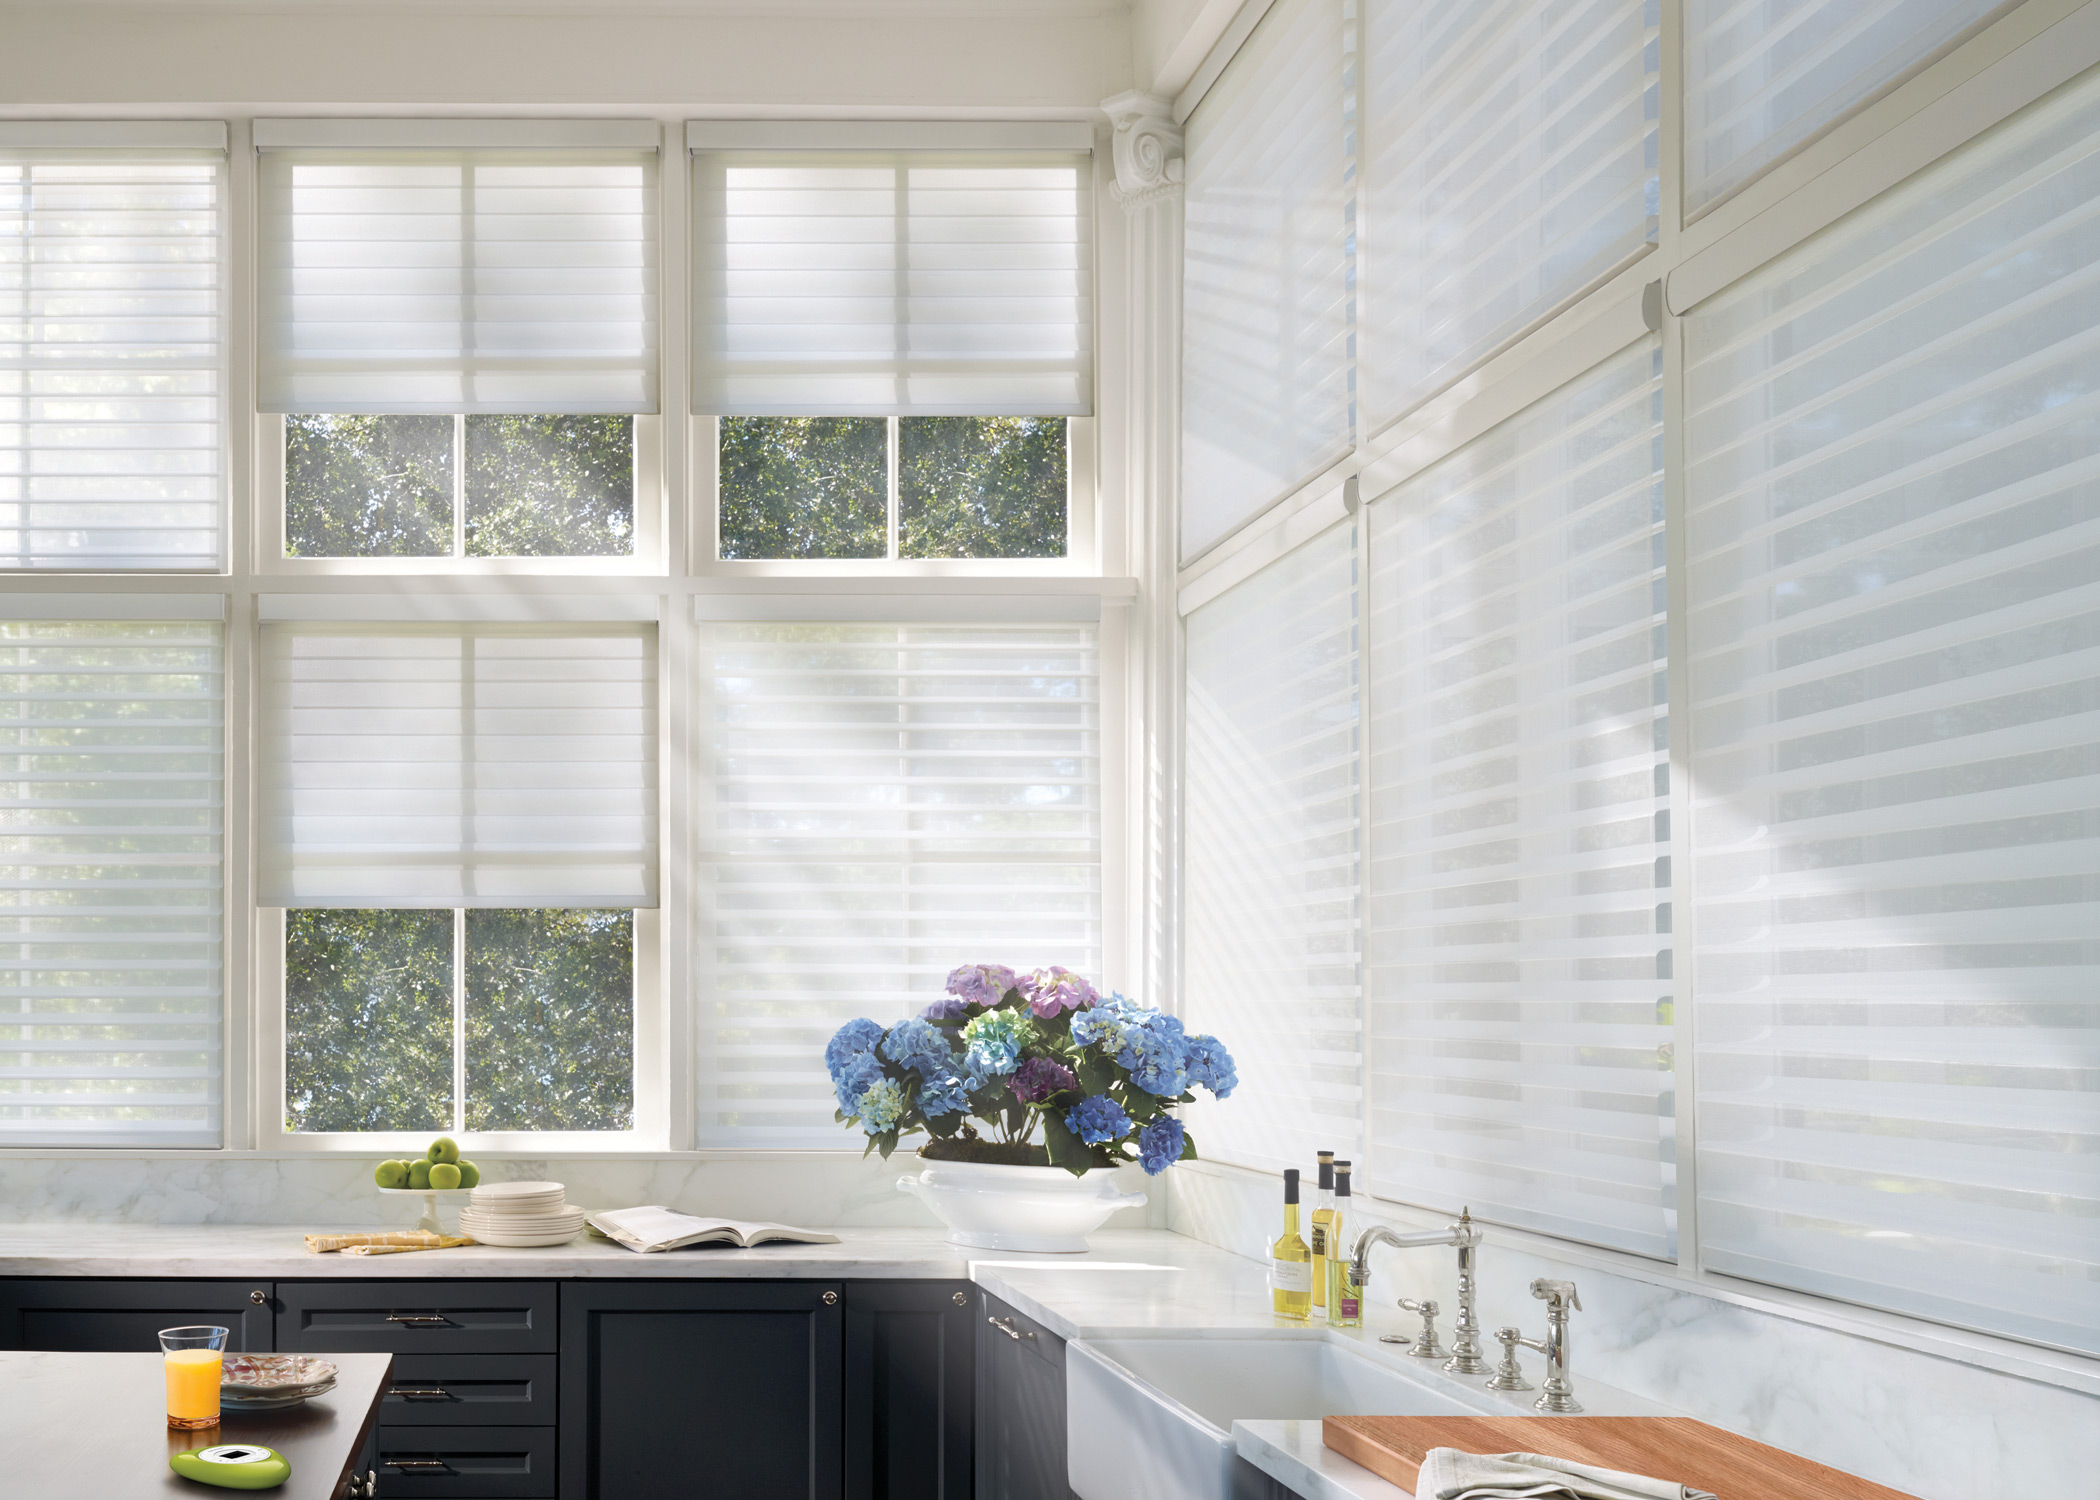 Shades in penticton penticton hunter douglas true colours for Hunter douglas motorized blinds troubleshooting